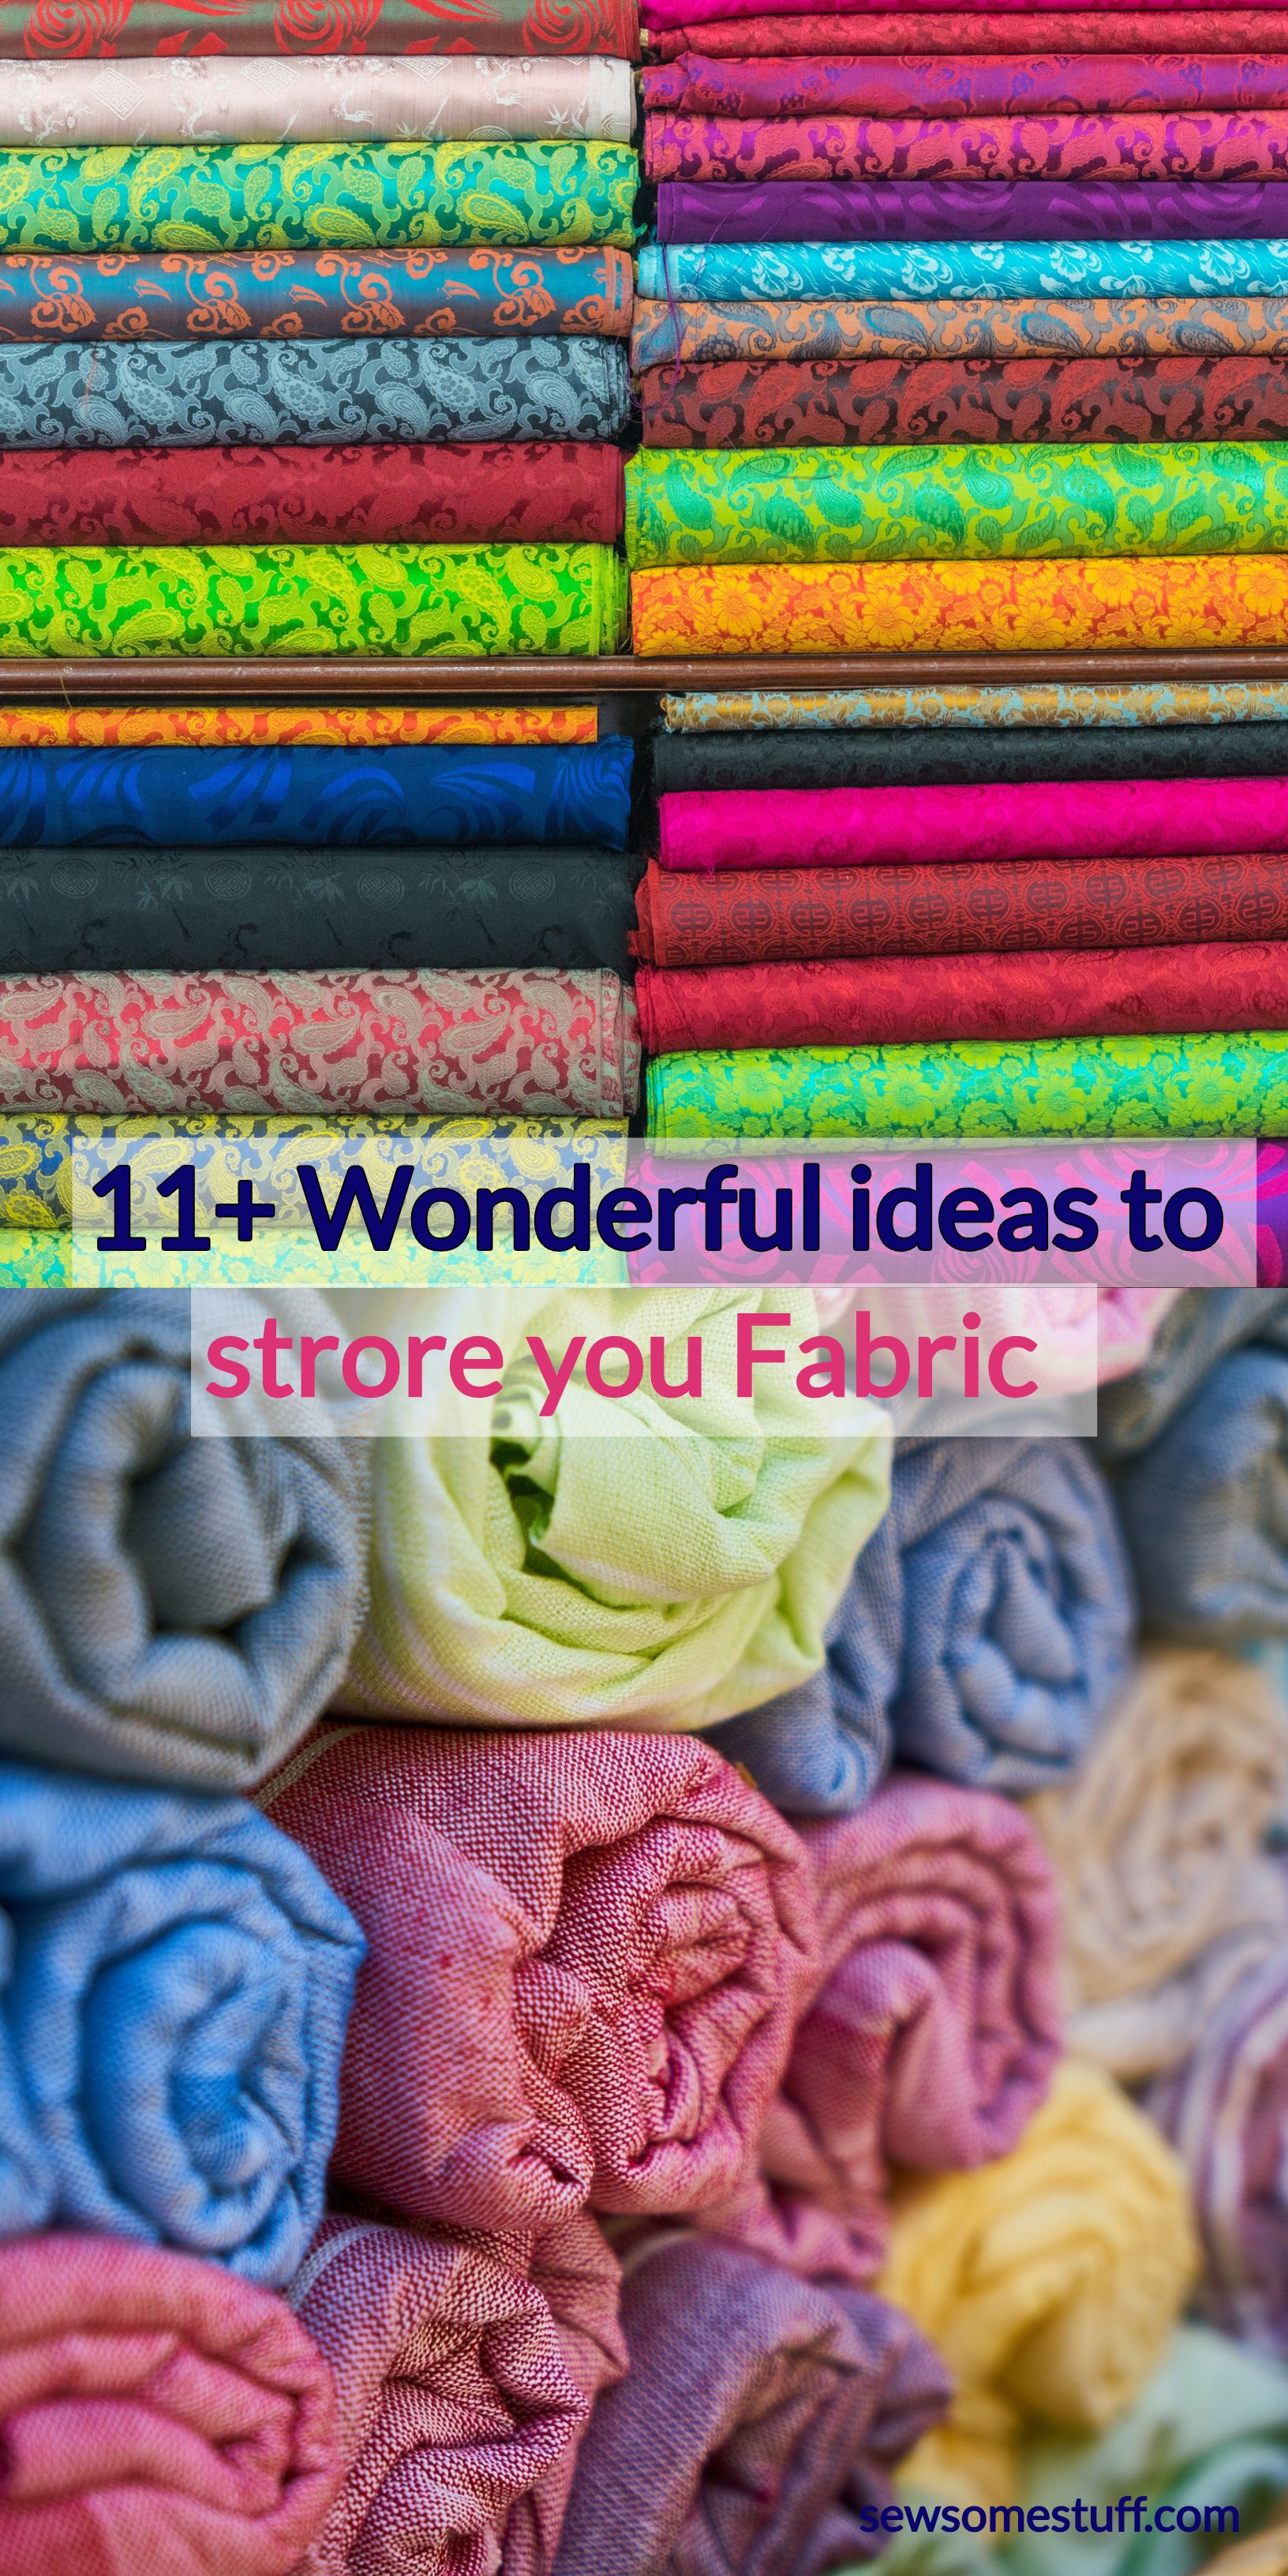 Check out these super awesome fabric storage ideas, Fabric Storage Ideas for Sewing Rooms fabric organization ideas storage for sewing room